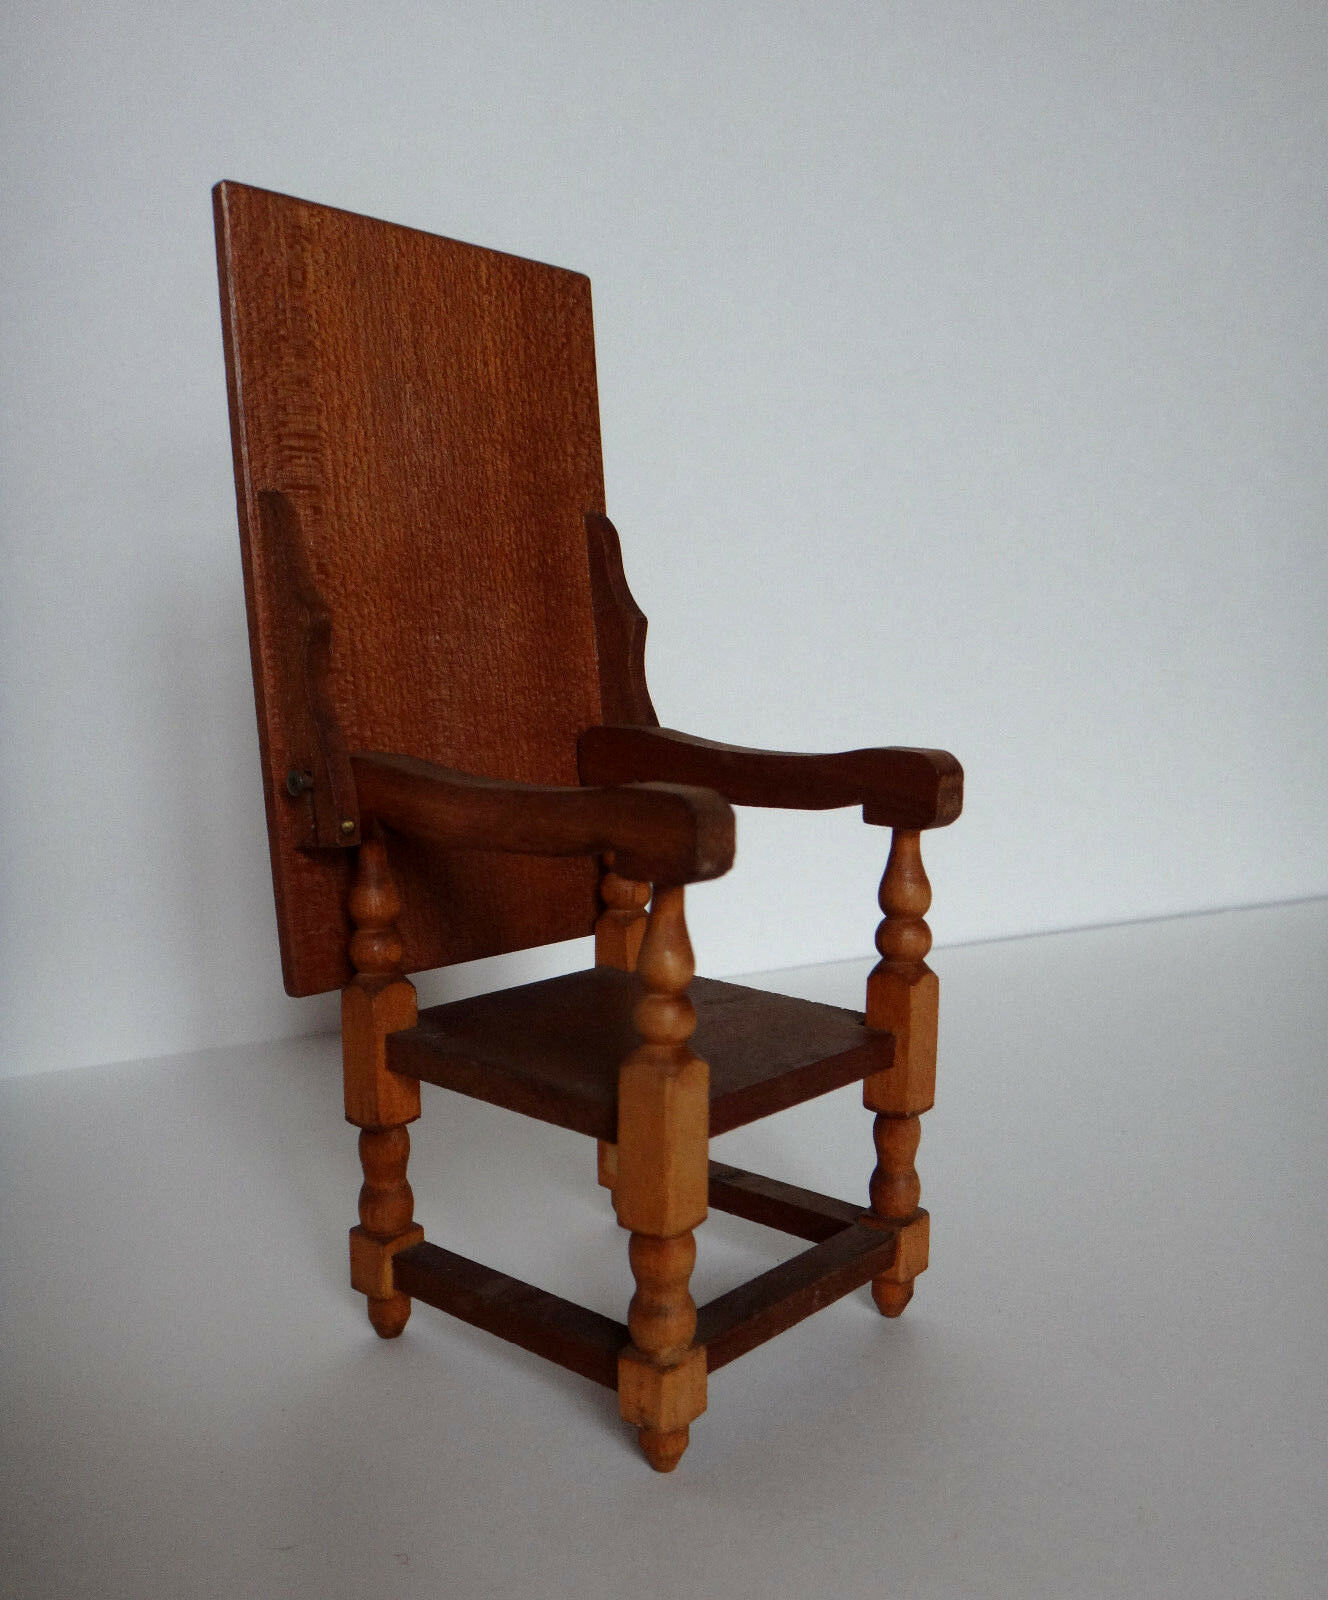 Vintage Wooden Doll House ConGrünible Chair turns to Table Dollhouse